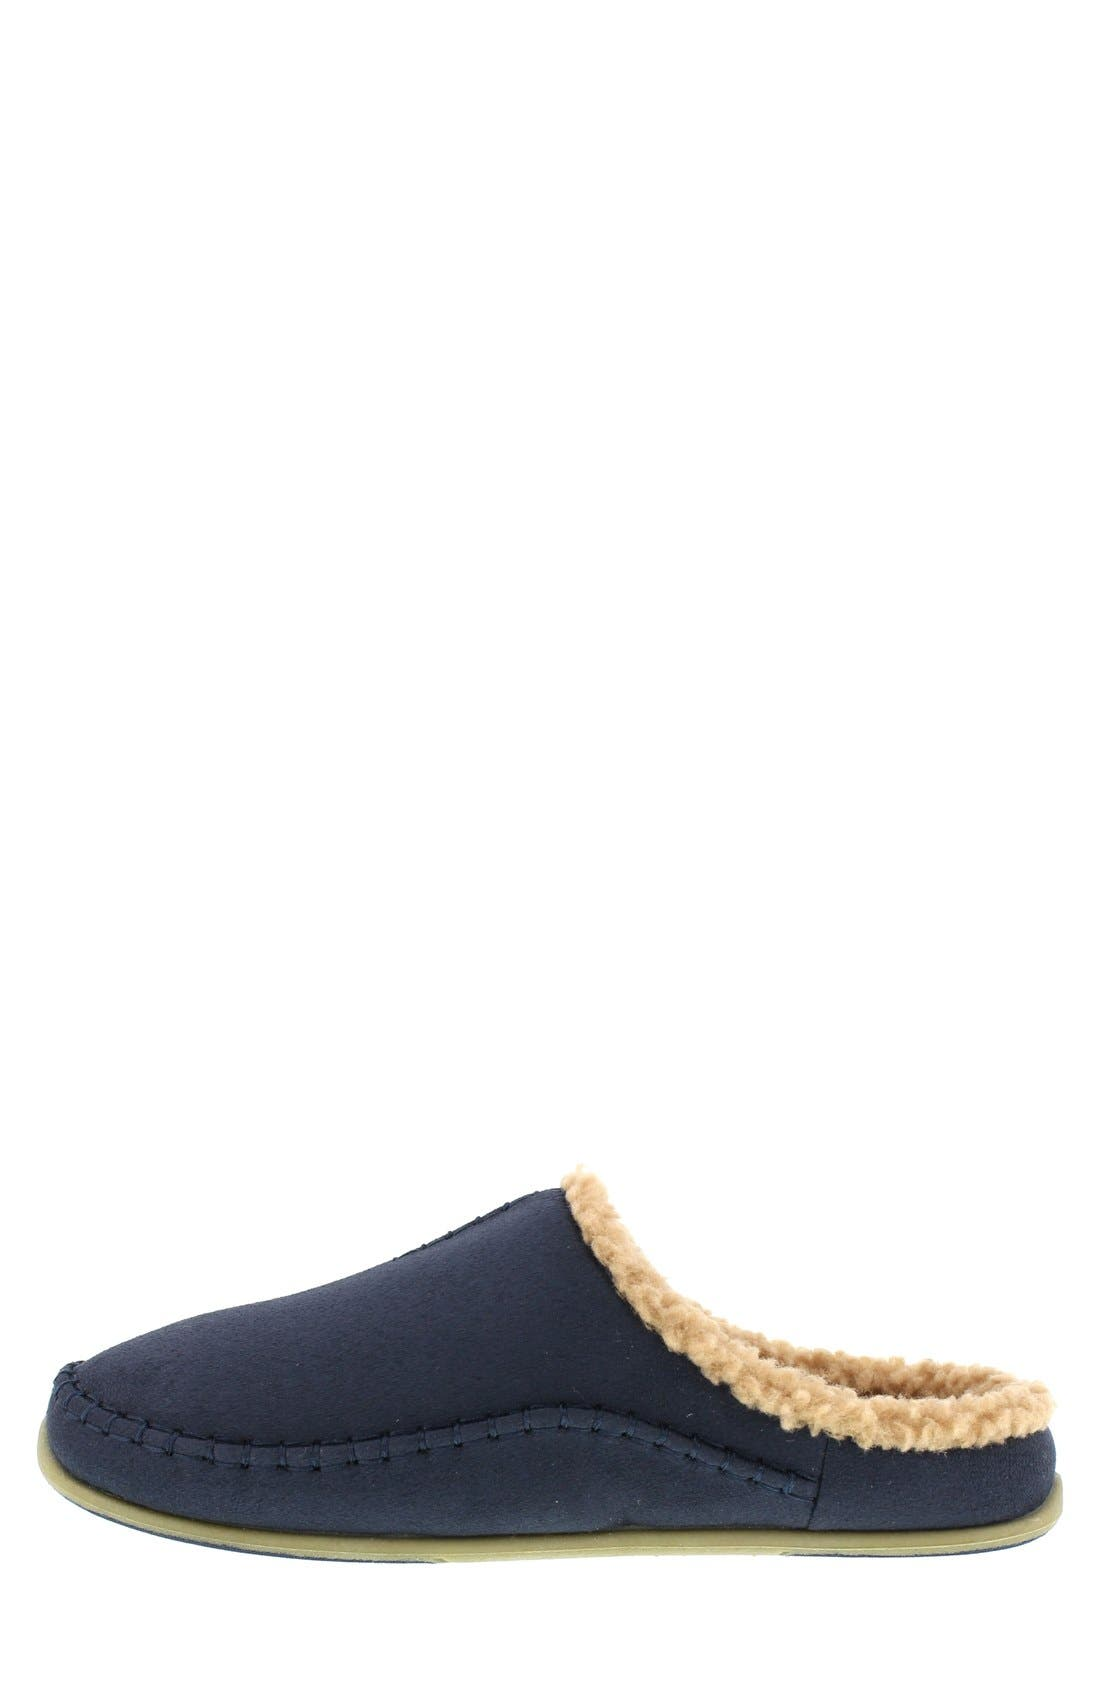 'Nordic' Slipper,                             Alternate thumbnail 2, color,                             Navy Microsuede